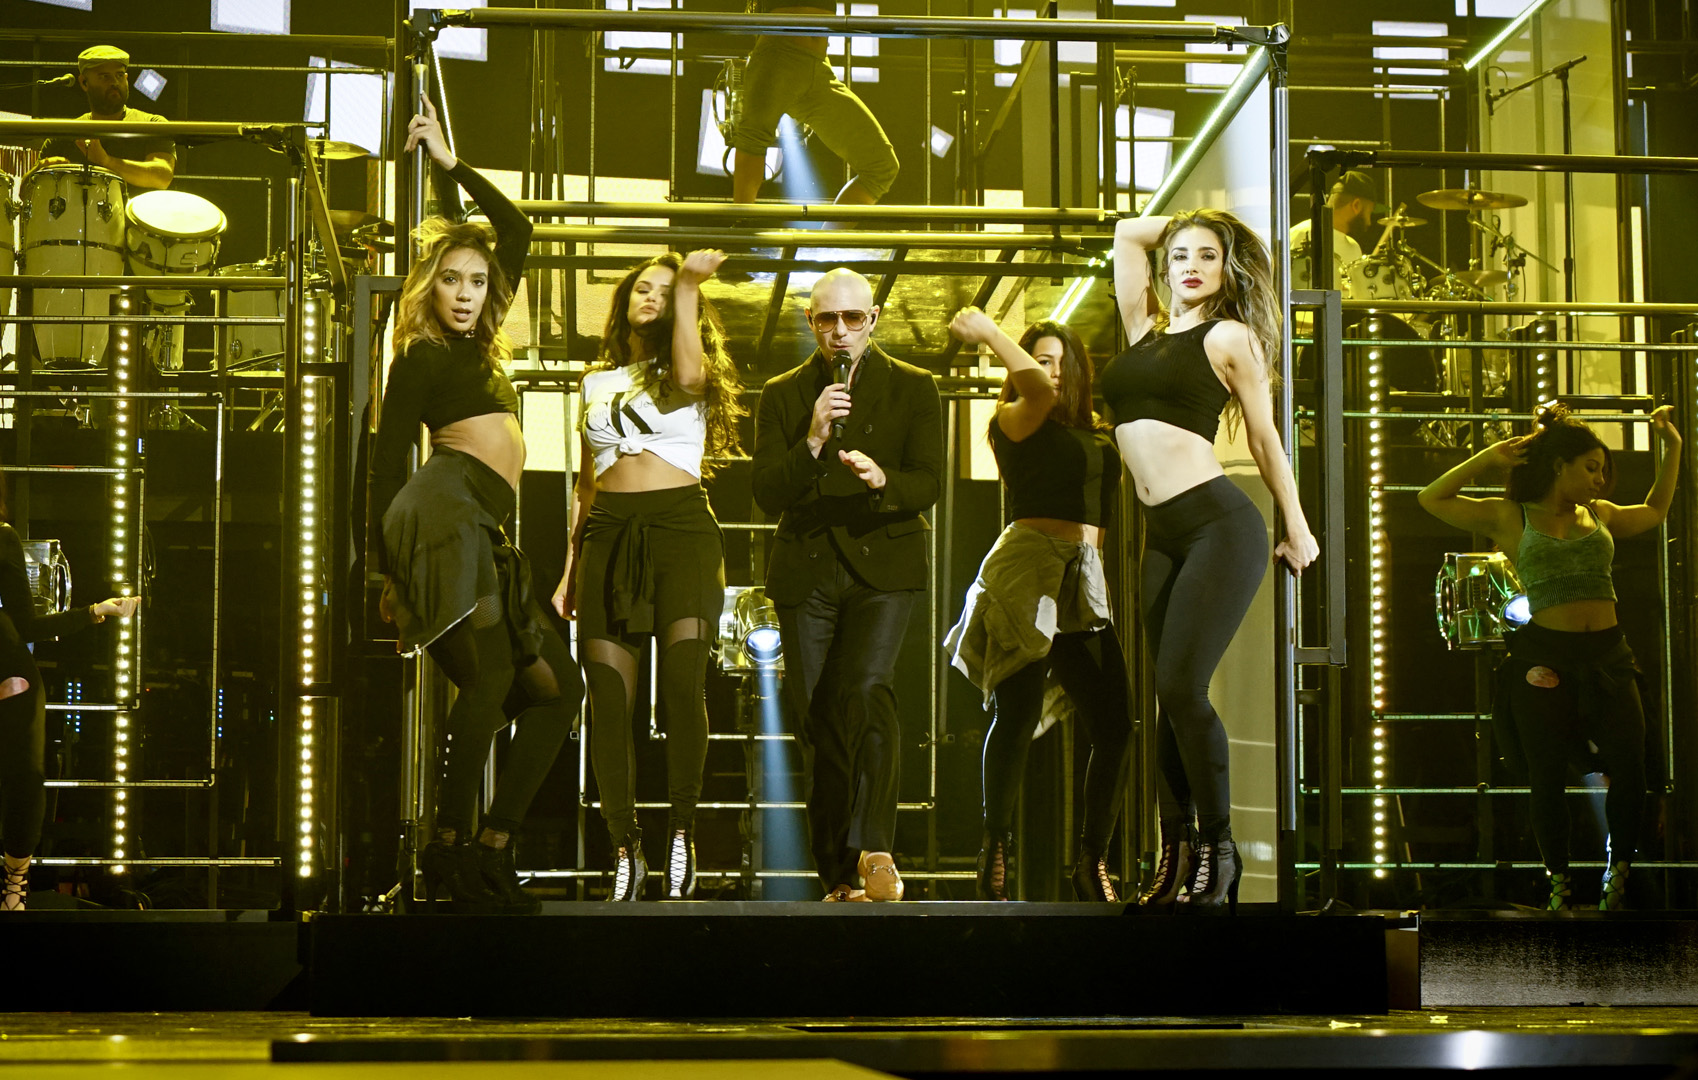 Pitbull brings some heat to the stage during his GRAMMY rehearsal.